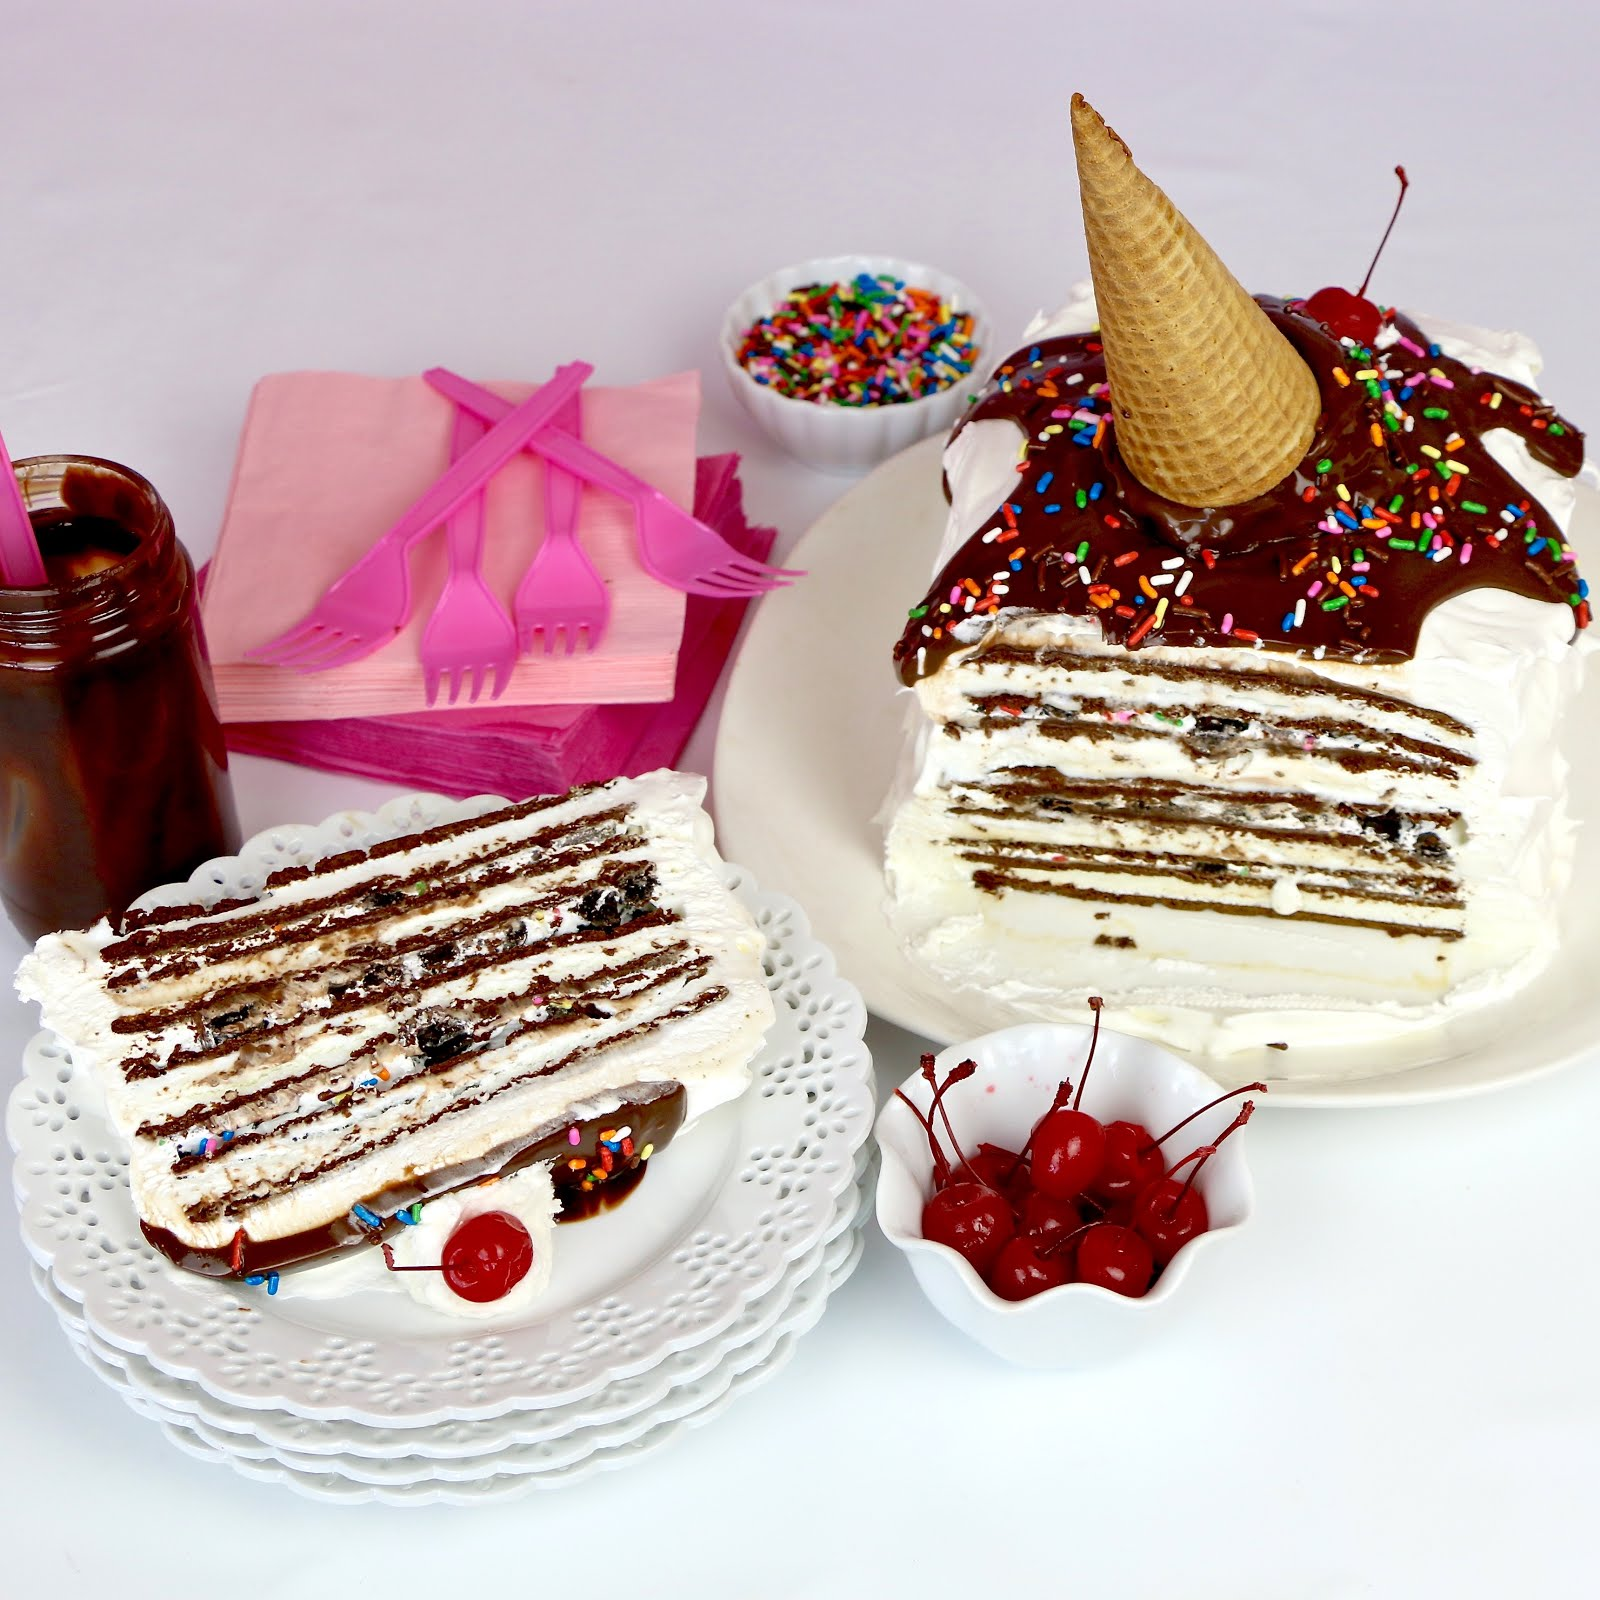 VIDEO Easy No Bake Ice Cream Sandwich Cake with Melting Cone